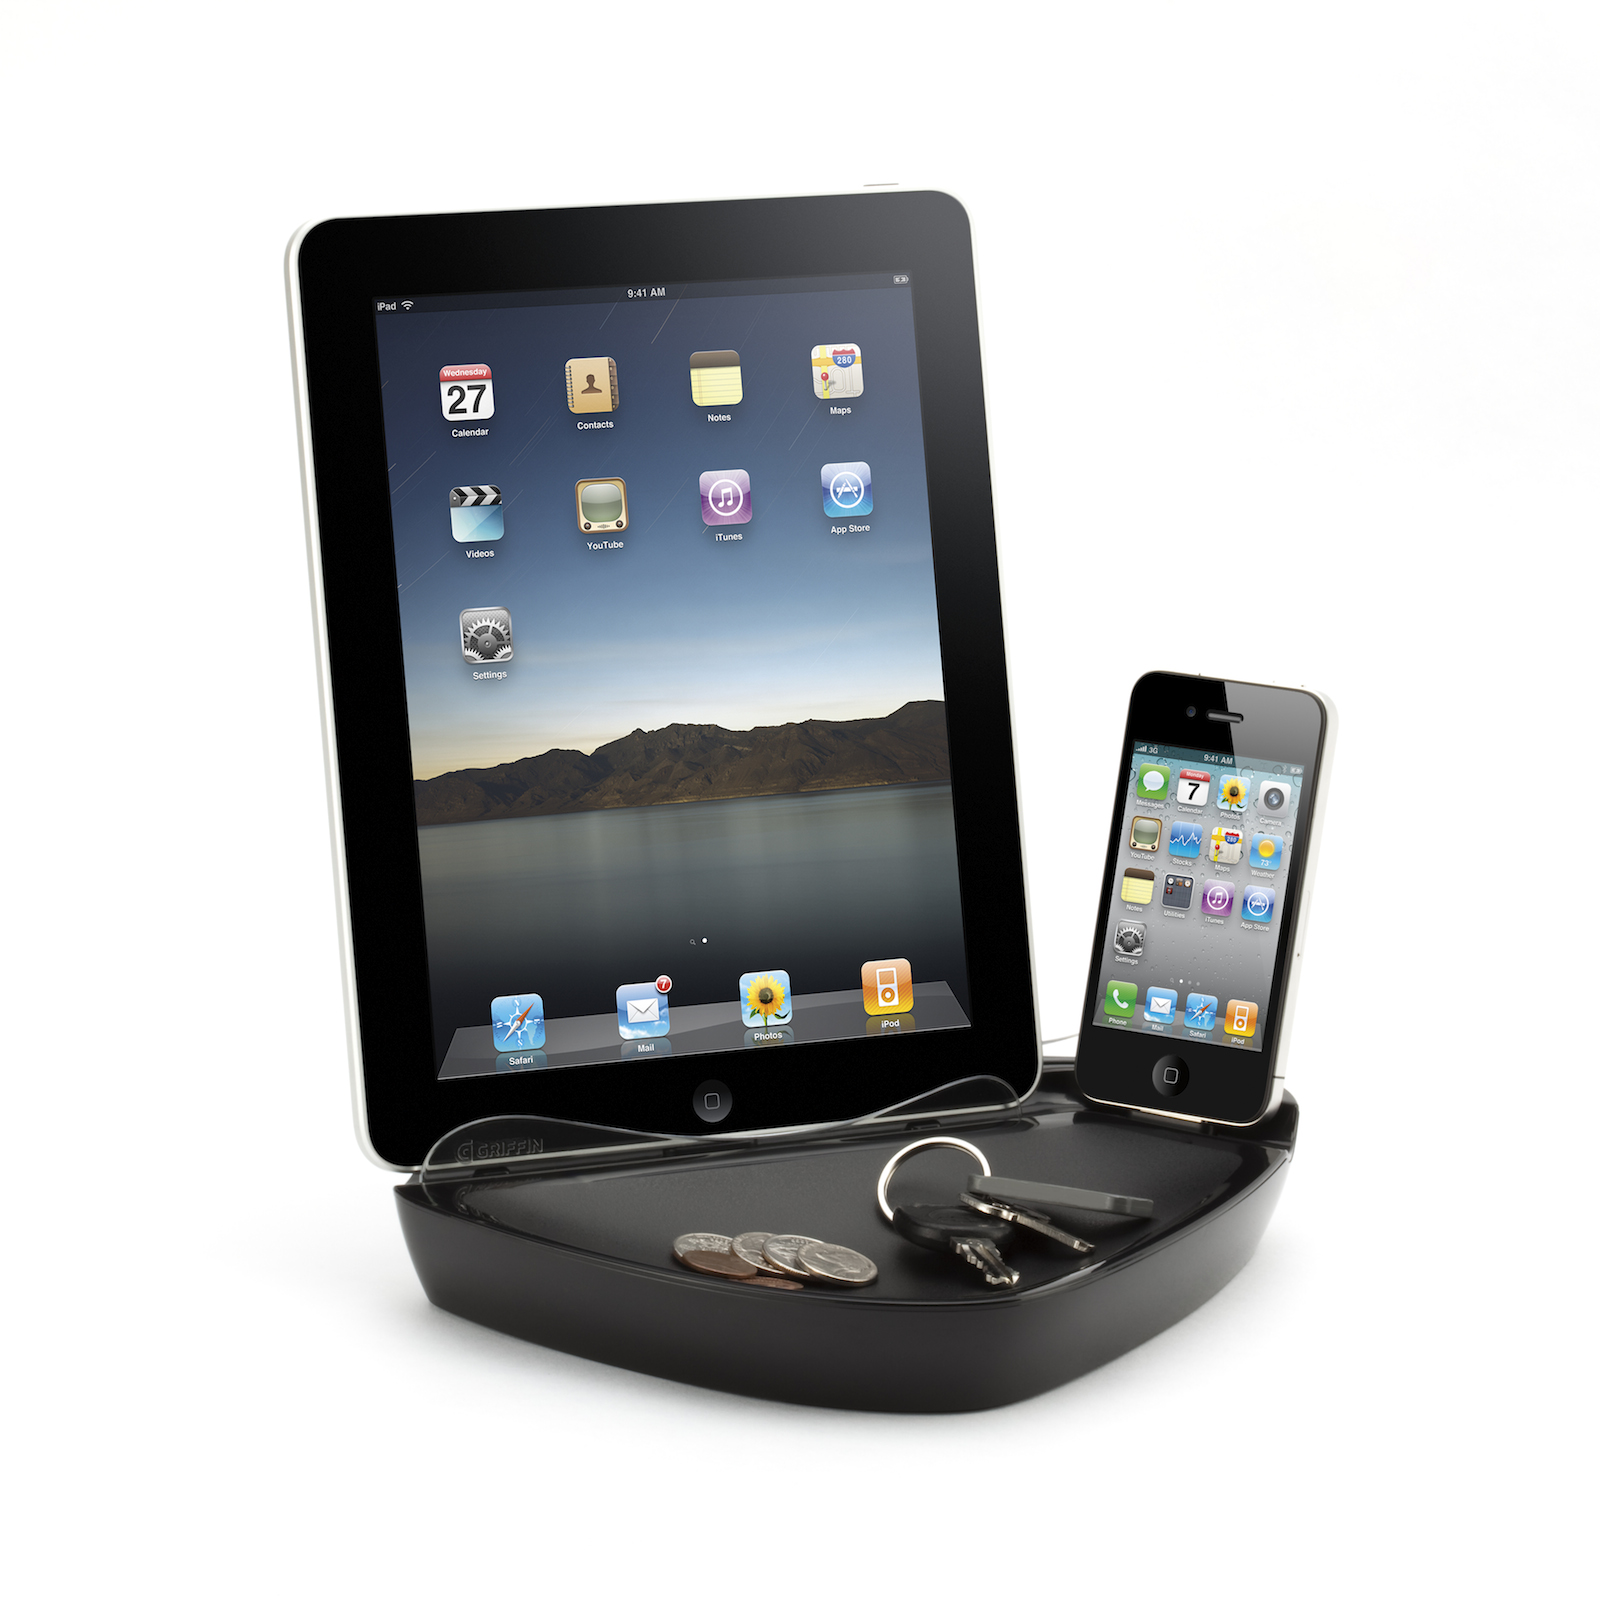 Griffin PowerDock Dual Charging Dock for iPad and other Apple Devices-Recharge, Organize Multiple devices at Sears.com